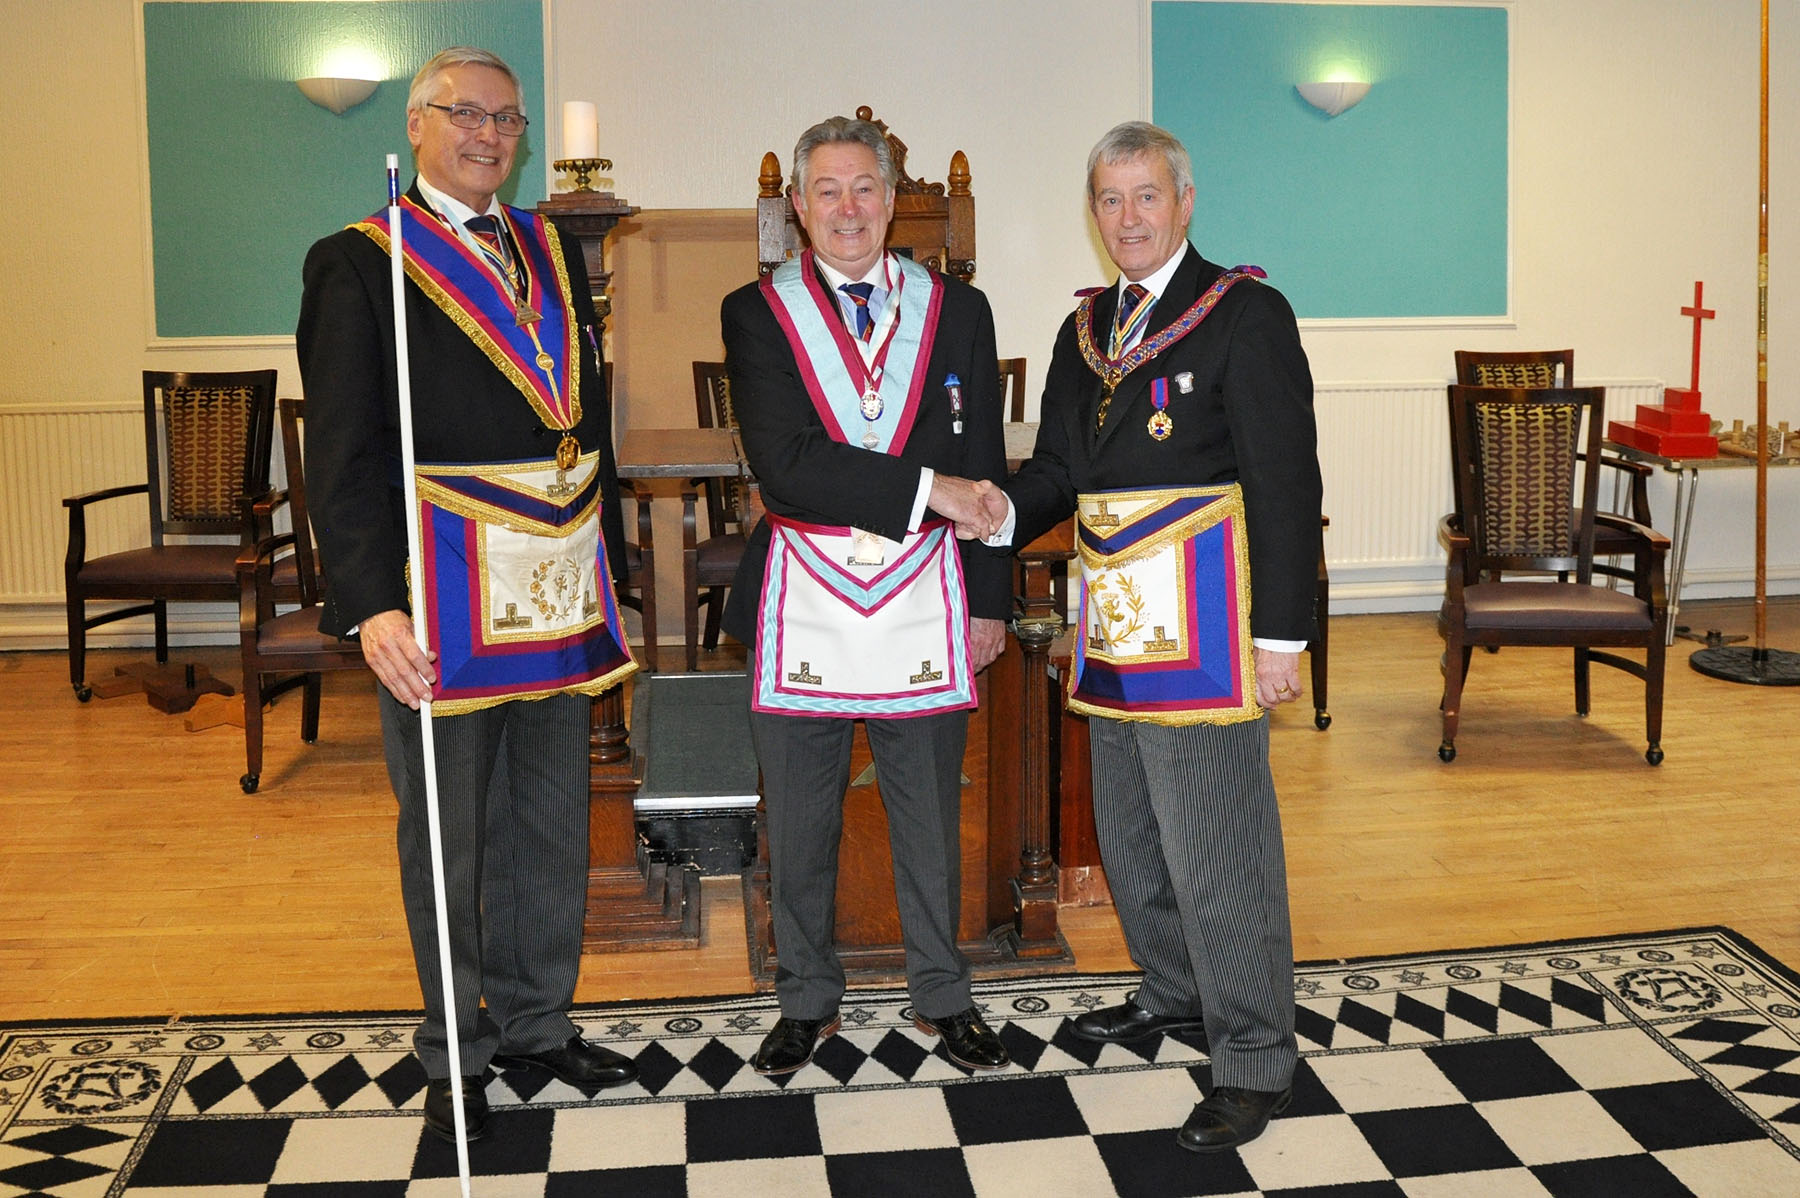 An Executive visit to Sanderstead Lodge